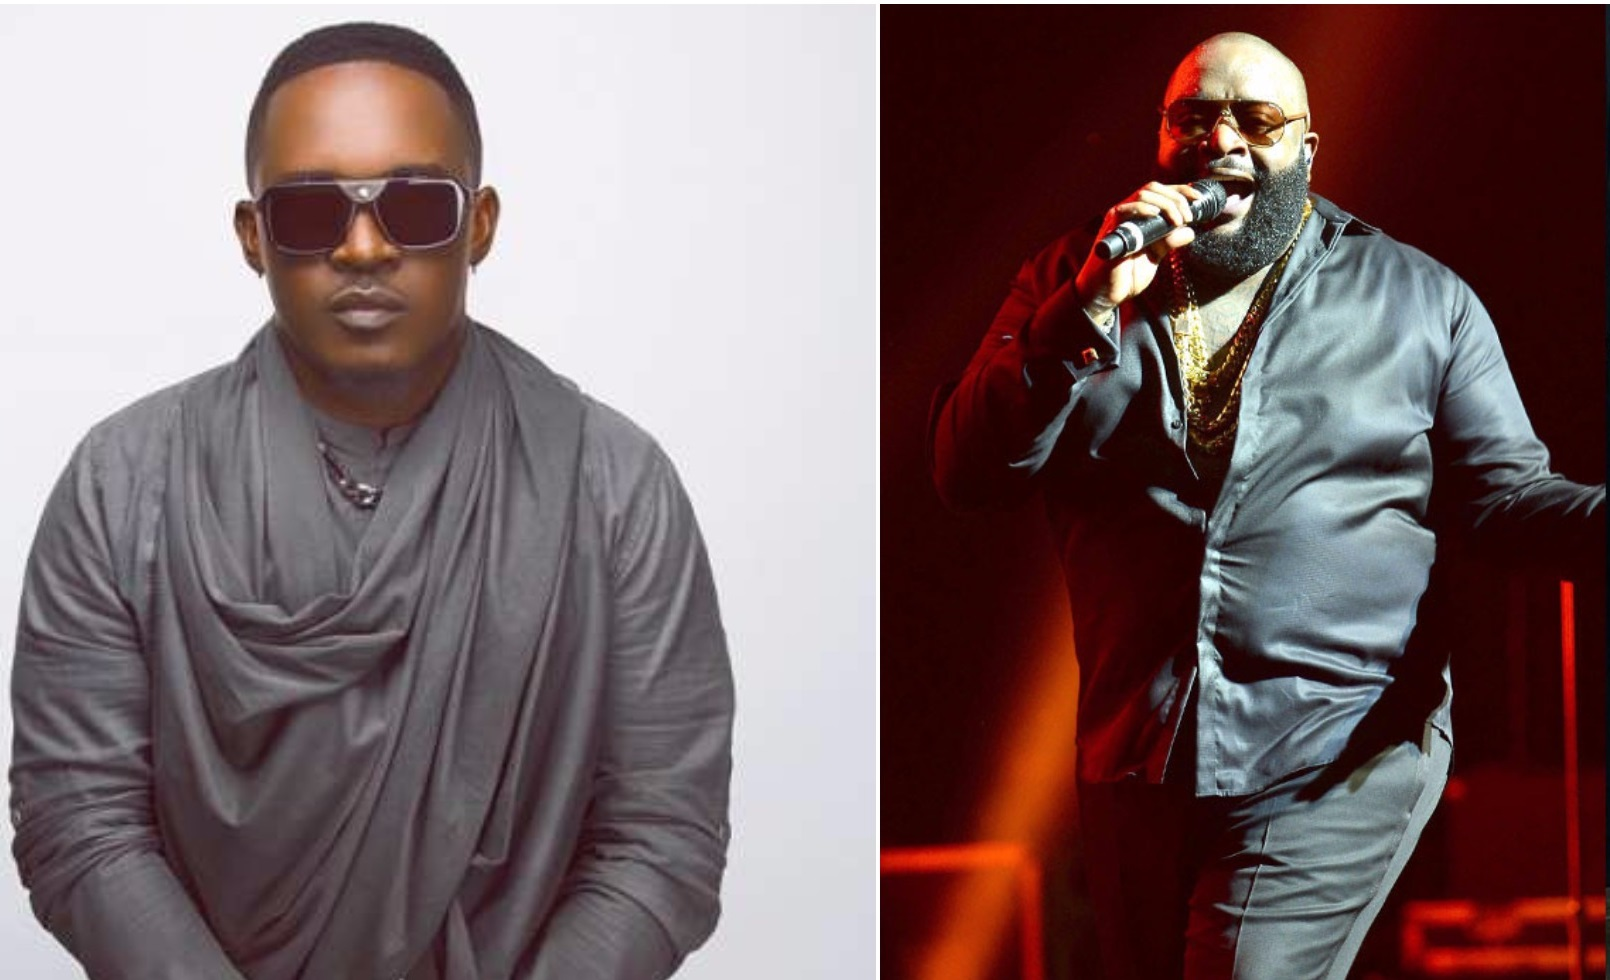 Yung denzL and Yung Renzel: M.I Abaga 'speaking into existence' a collabo with Rick Ross